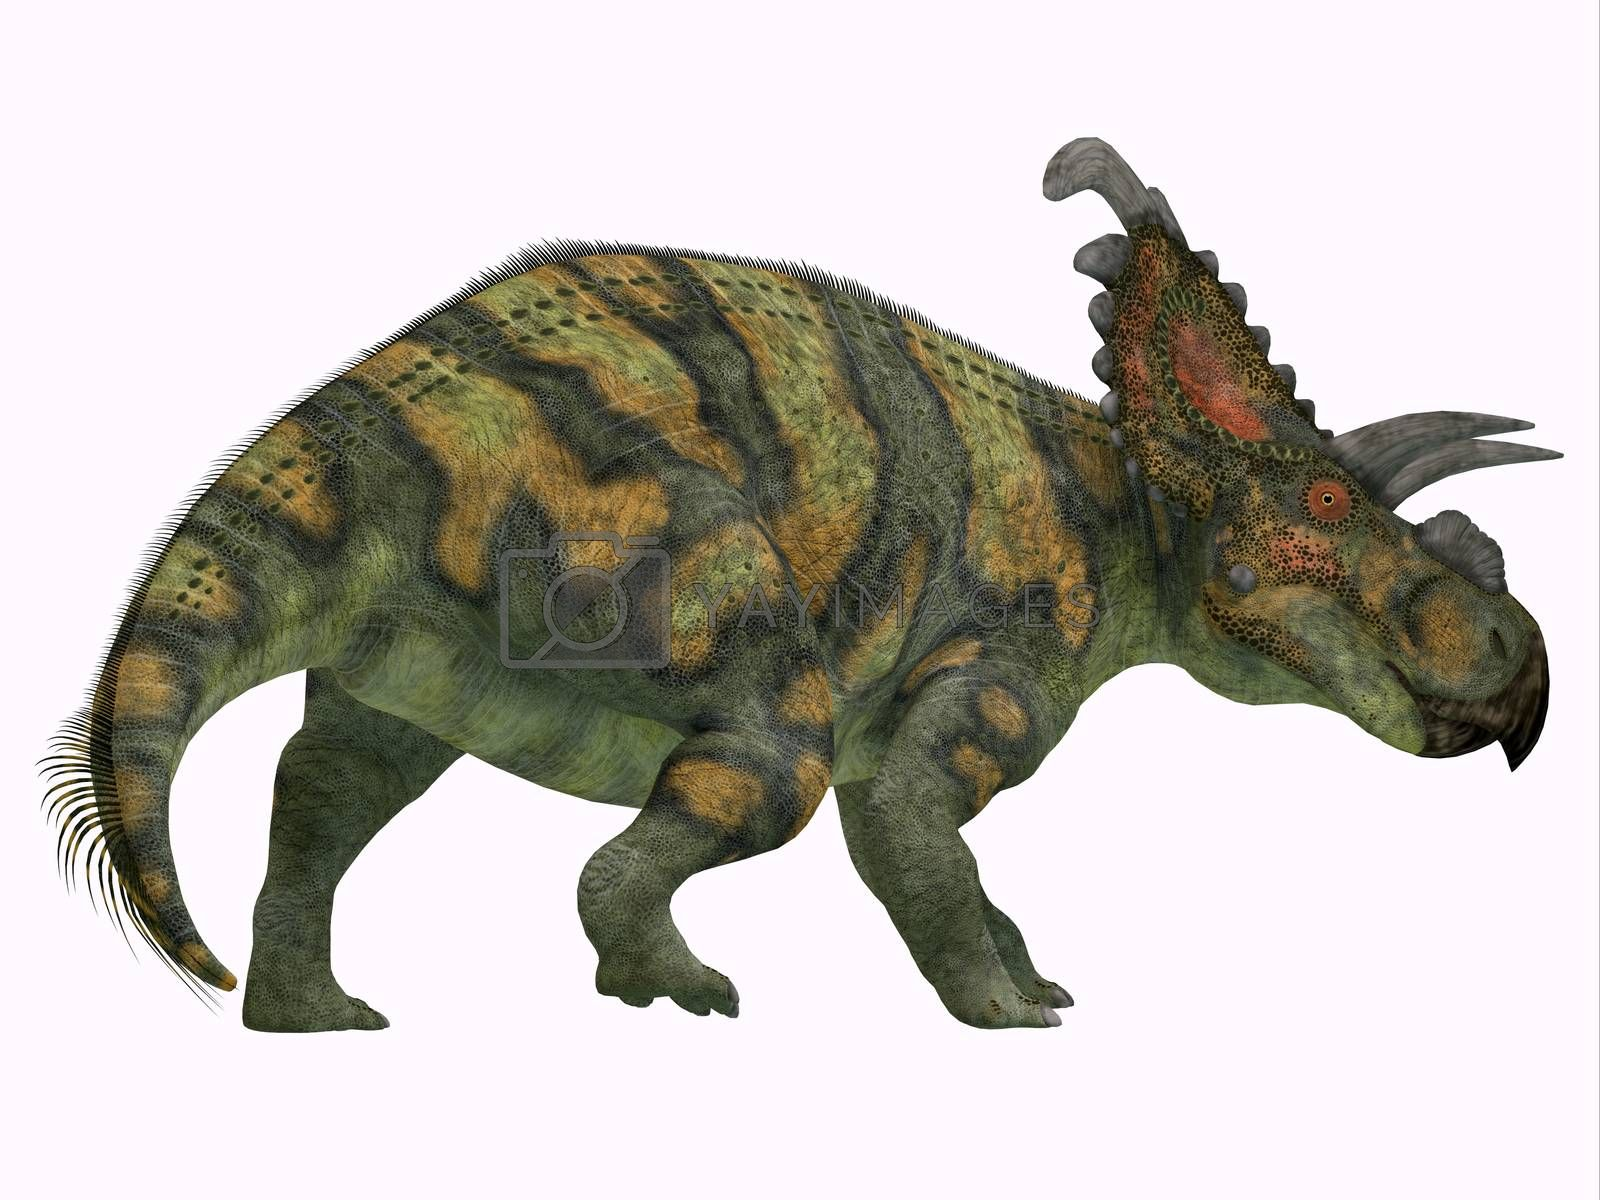 Albertaceratops was a herbivorous Ceratopsian dinosaur that lived in Alberta, Canada in the Cretaceous Period.